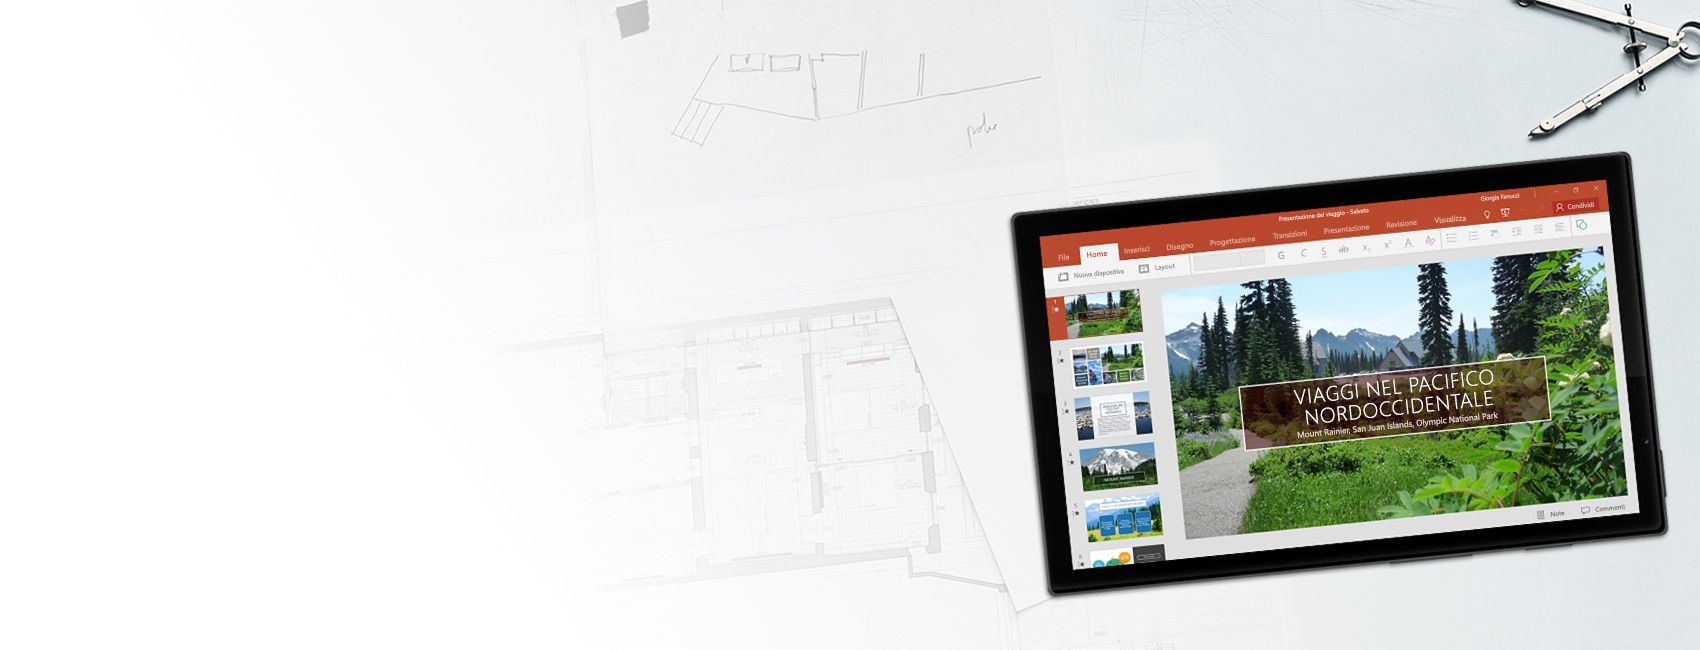 Tablet Windows che visualizza una presentazione di PowerPoint sui viaggi nel Pacifico nordoccidentale in PowerPoint per Windows 10 Mobile